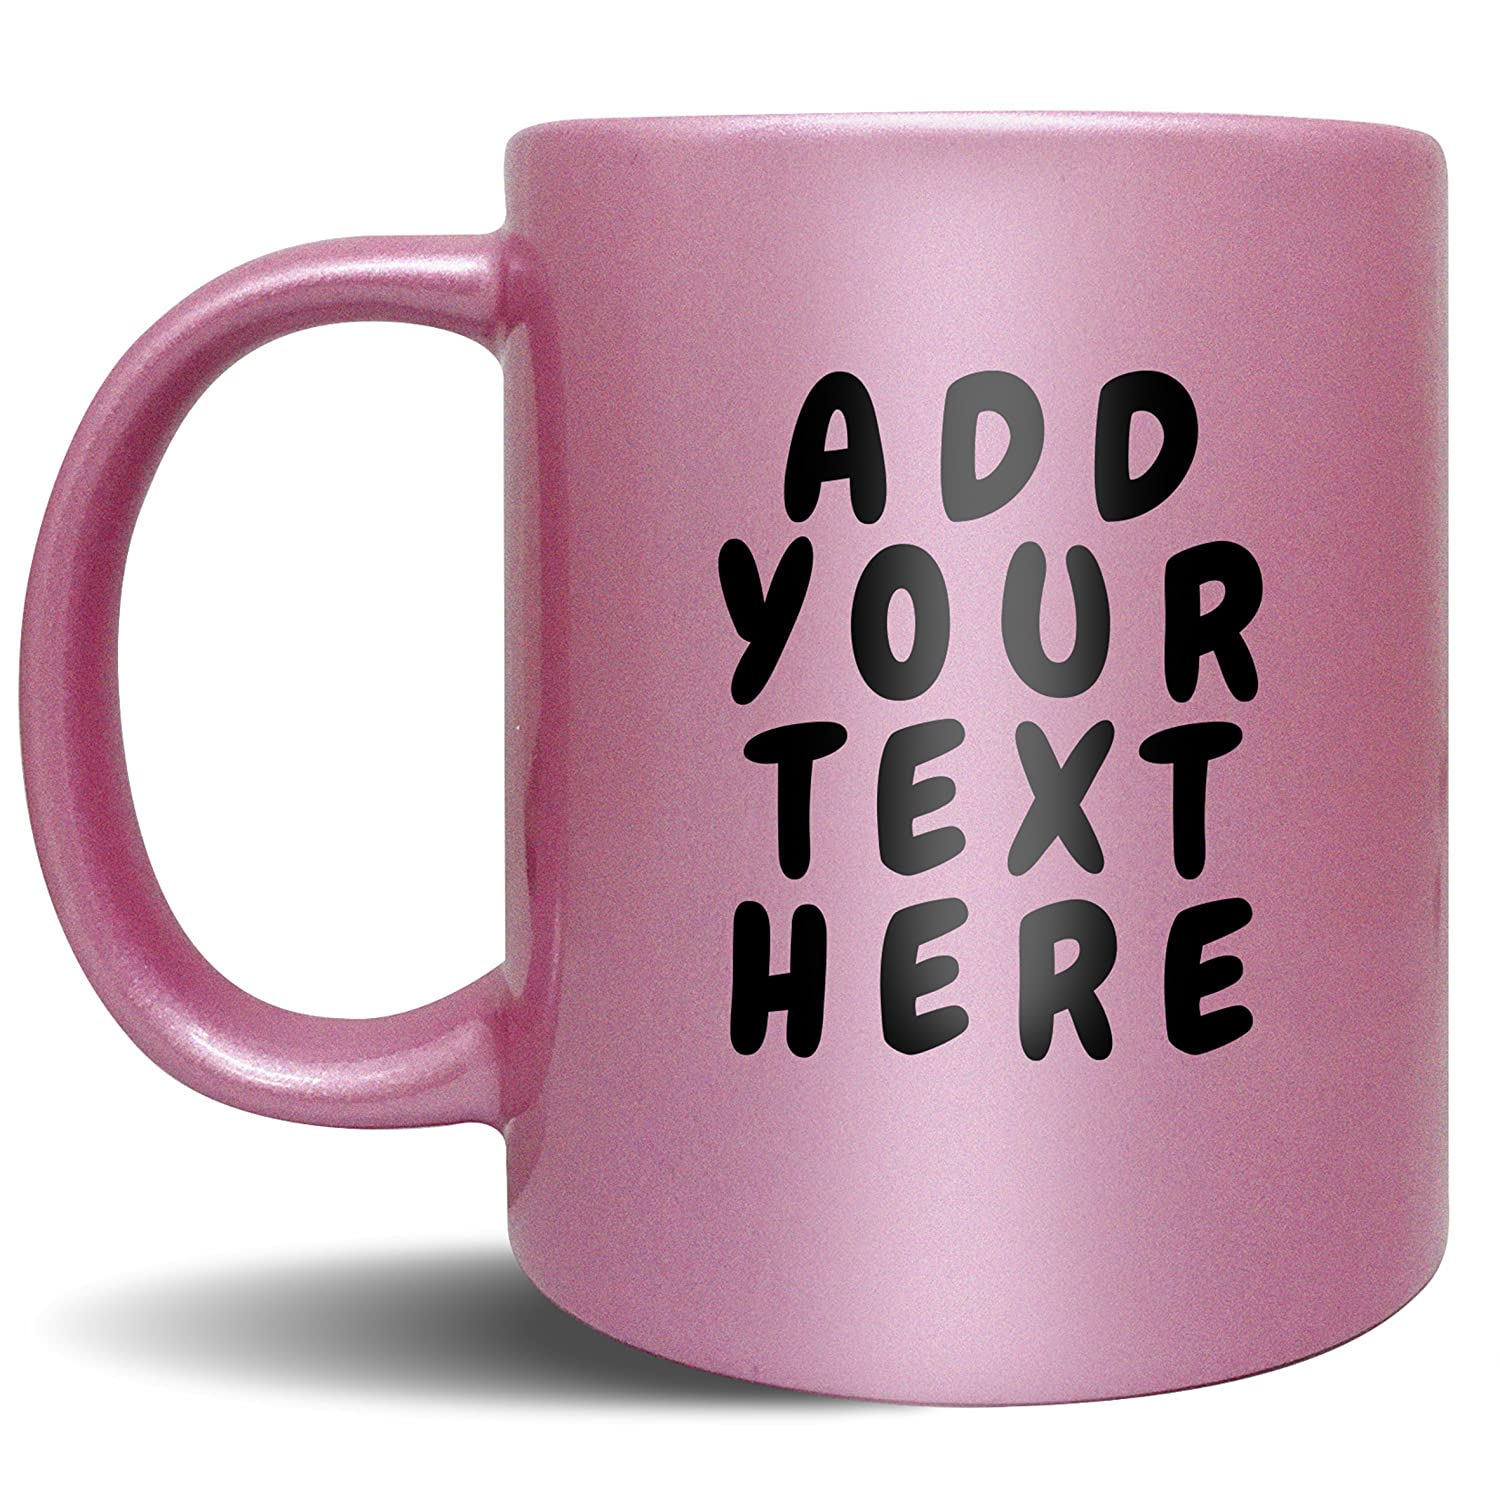 Amazon.com: Custom Coffee Mugs - ADD YOUR NAME TEXT LETTERS ...